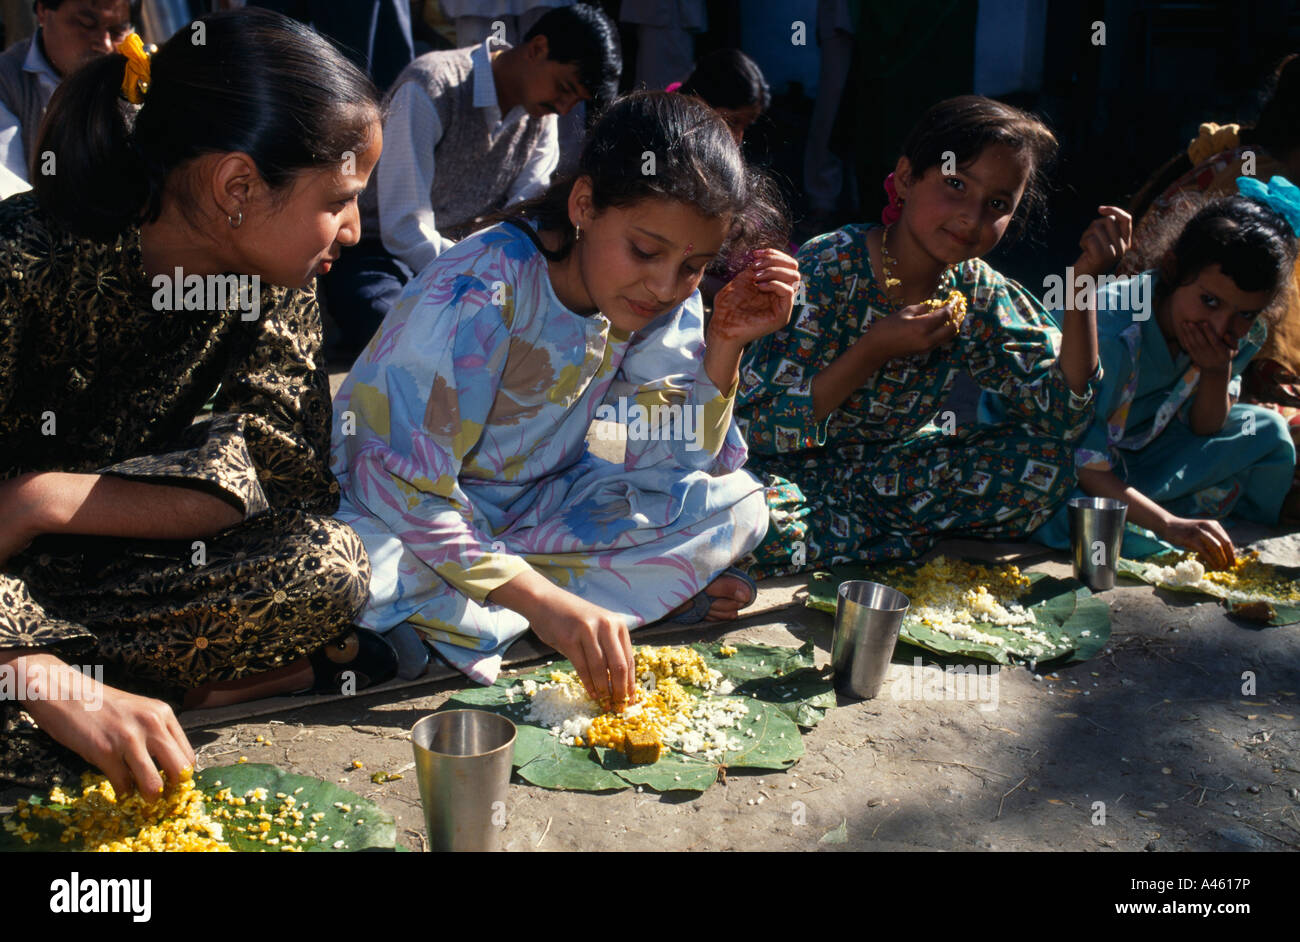 INDIA South Asia Himachal Pradesh Kulu Girls eating from banana leaves with their hands at meal during country wedding - Stock Image